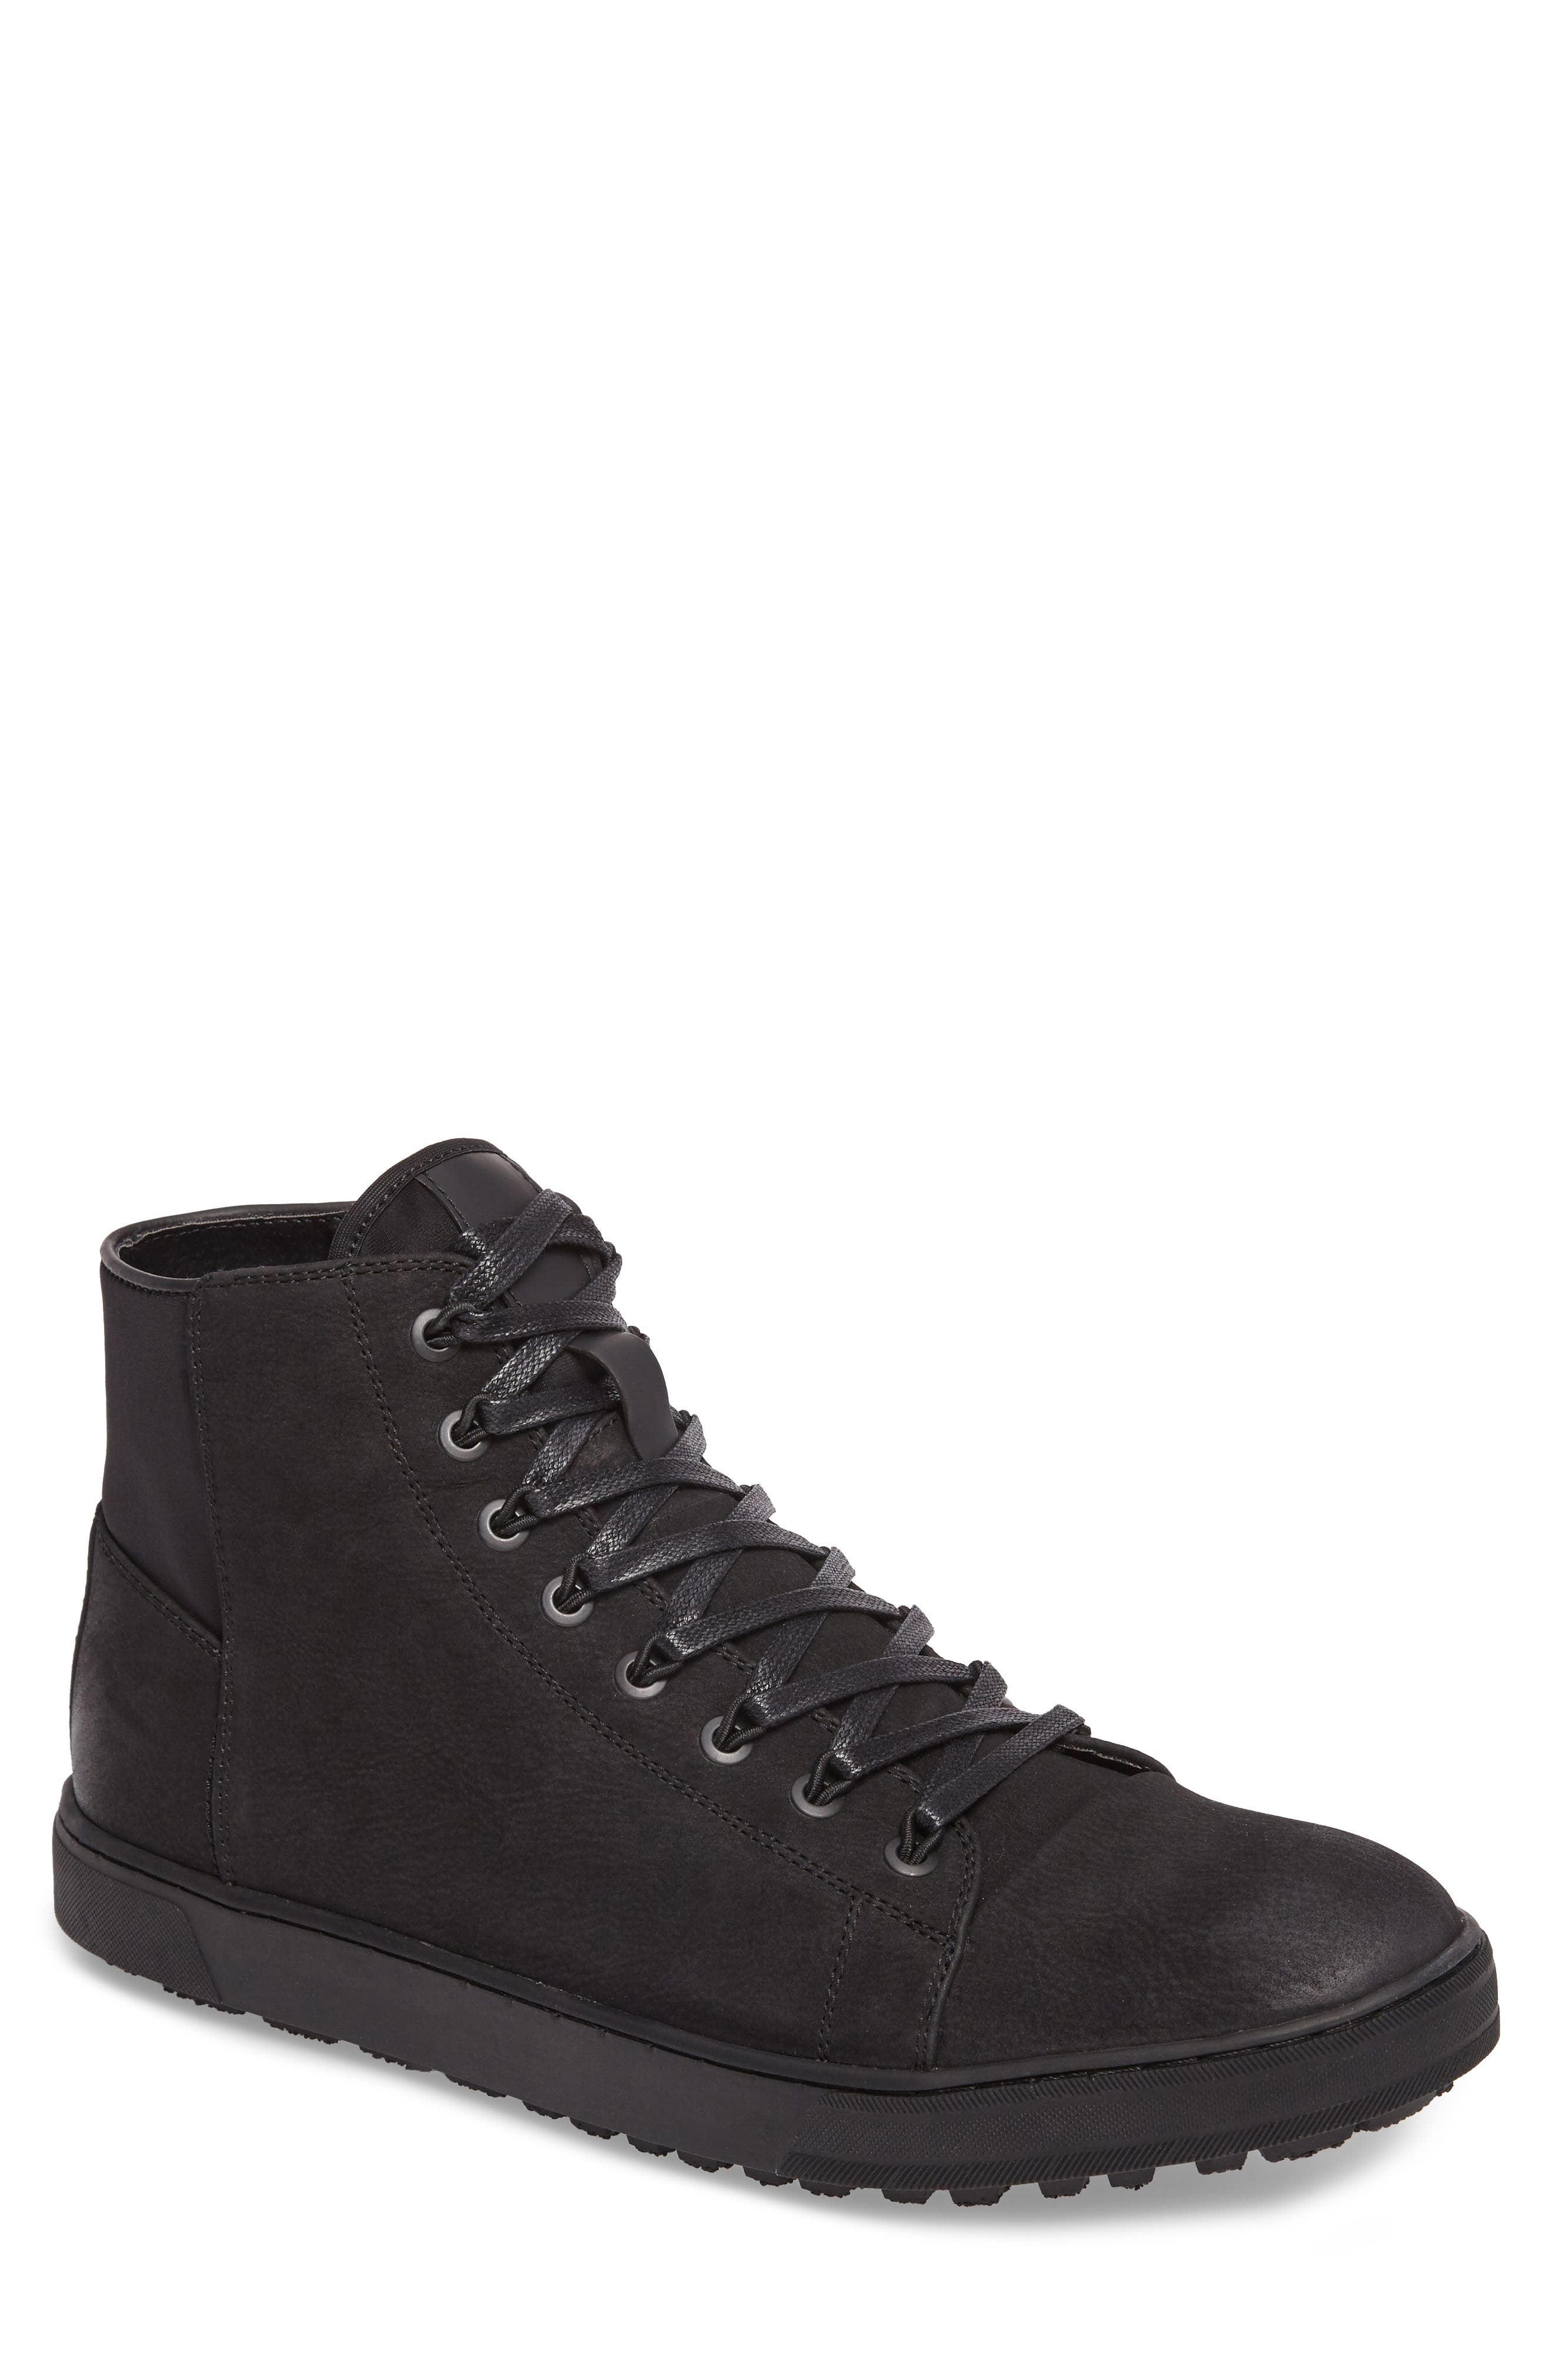 Kenneth Cole Reaction High-Top Sneaker,                         Main,                         color,